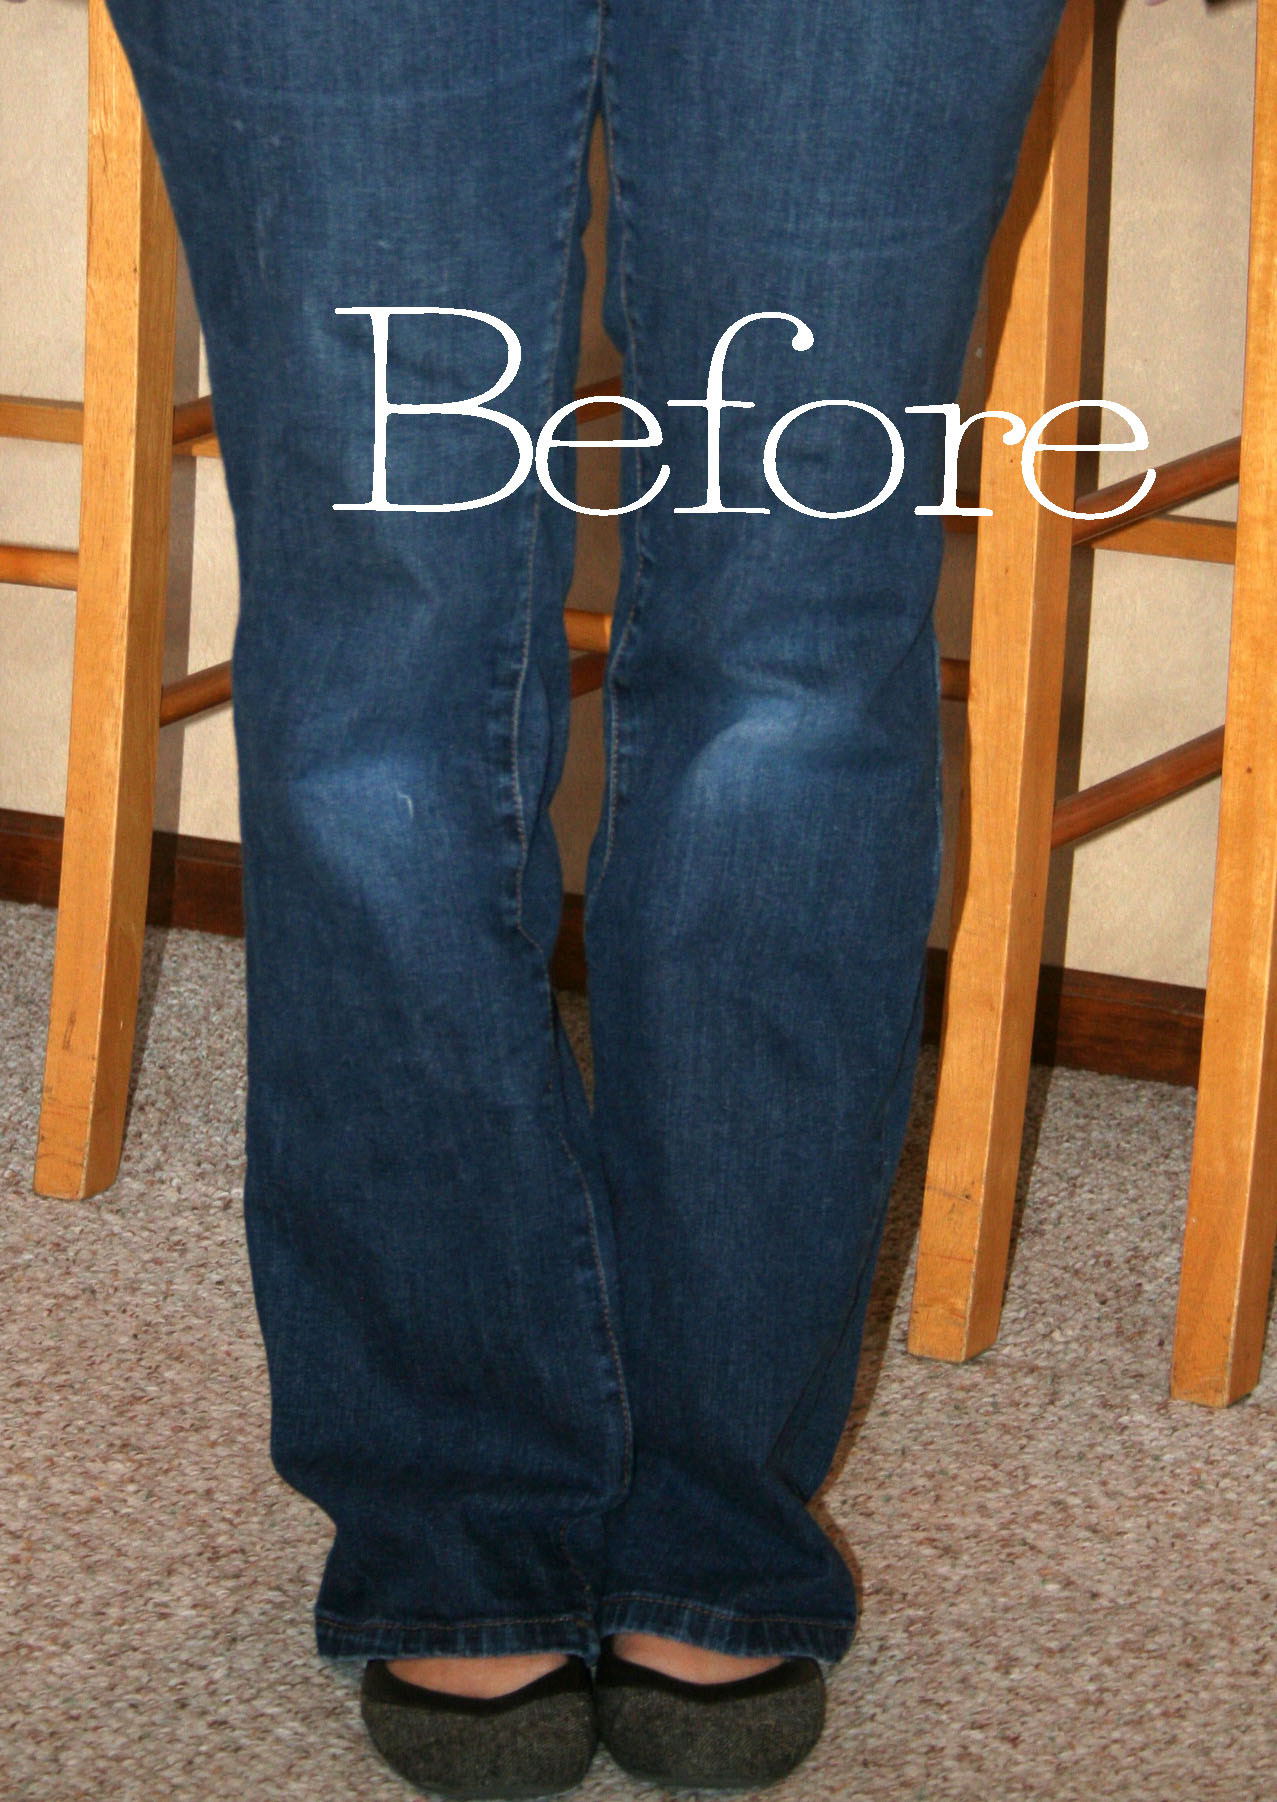 Shoes With Bootcut Jeans - Jeans Am